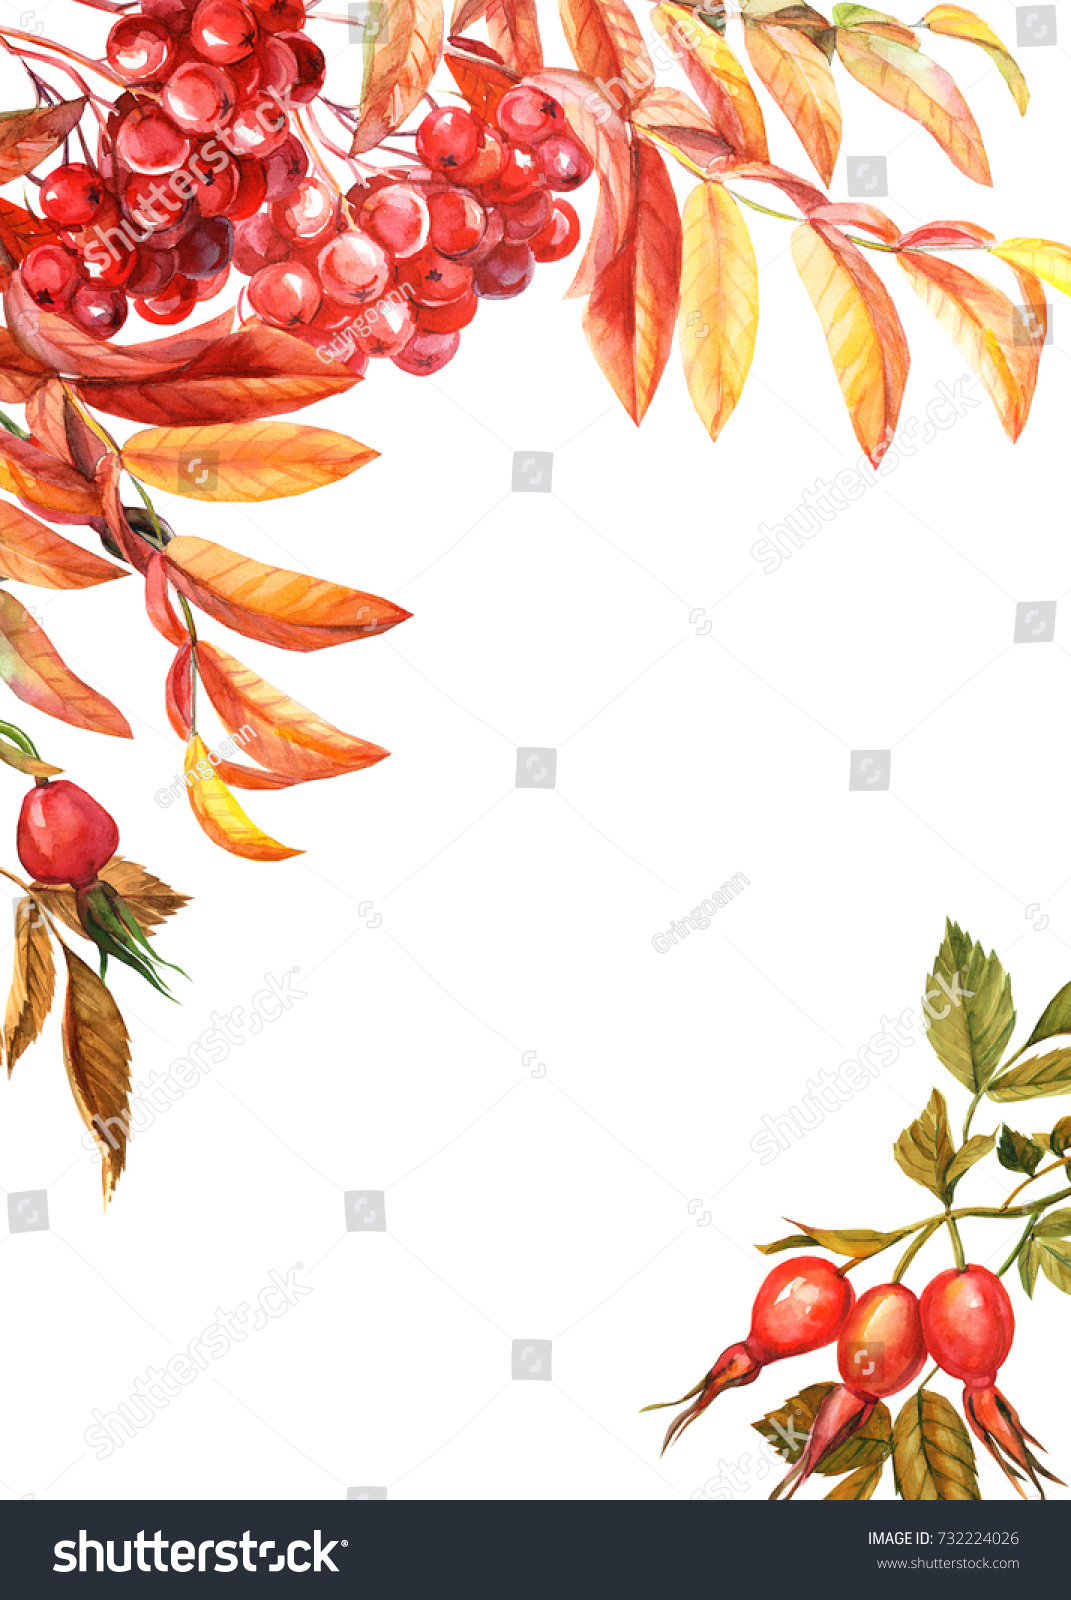 Watercolor Drawing Autumn Composition Rowan Berries Stock